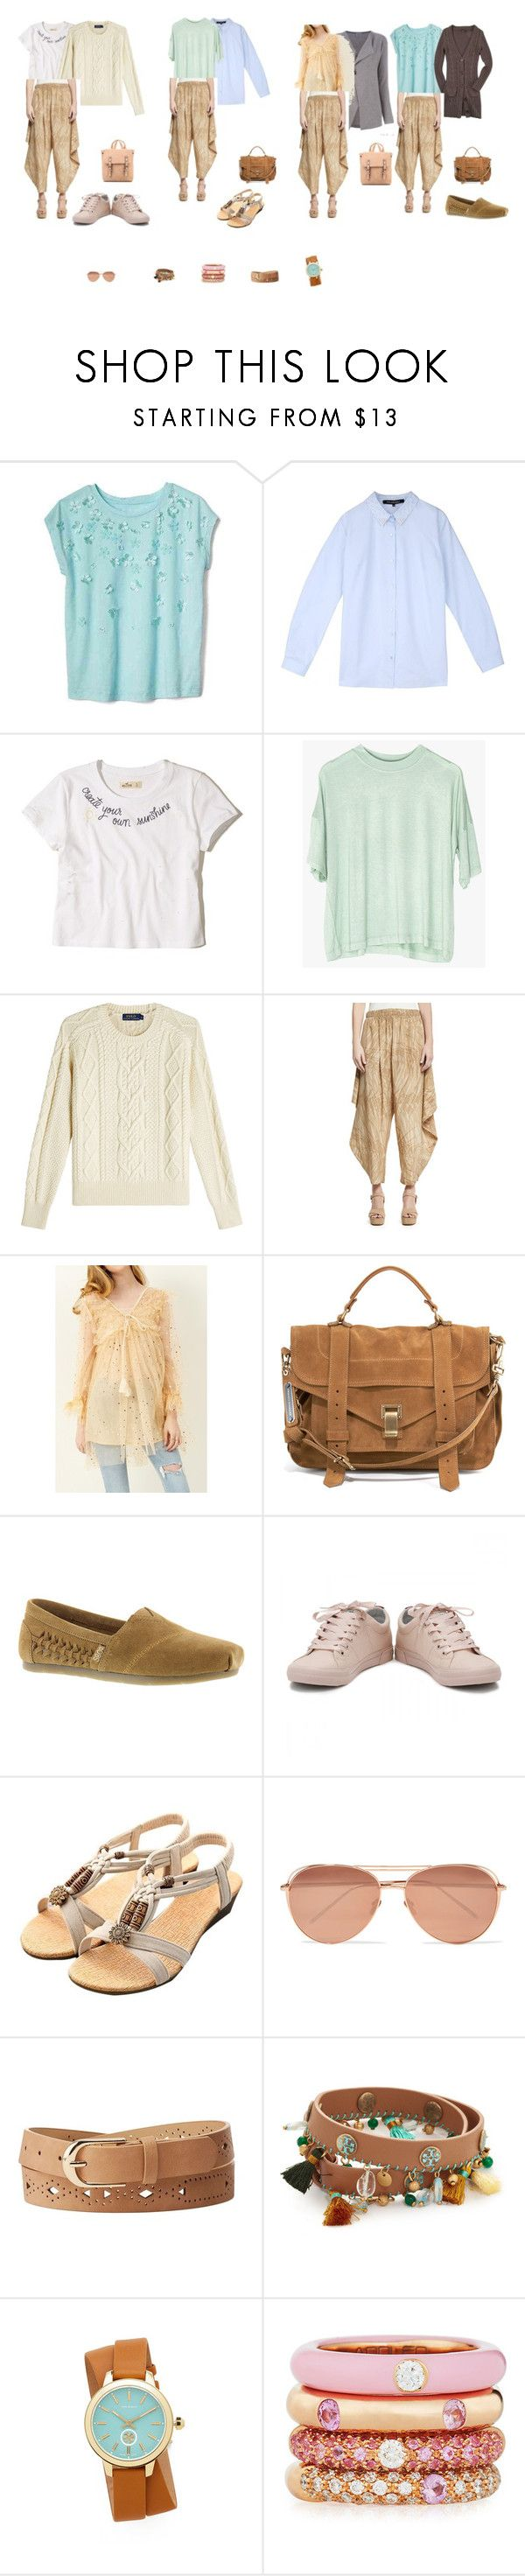 летняя капсула комплект 1 by anna-tsareva-1 on Polyvore featuring мода, Polo Ralph Lauren, storets, Hollister Co., Halston Heritage, BOBS from Skechers, Proenza Schouler, Tory Burch, Adolfo Courrier and Charlotte Russe